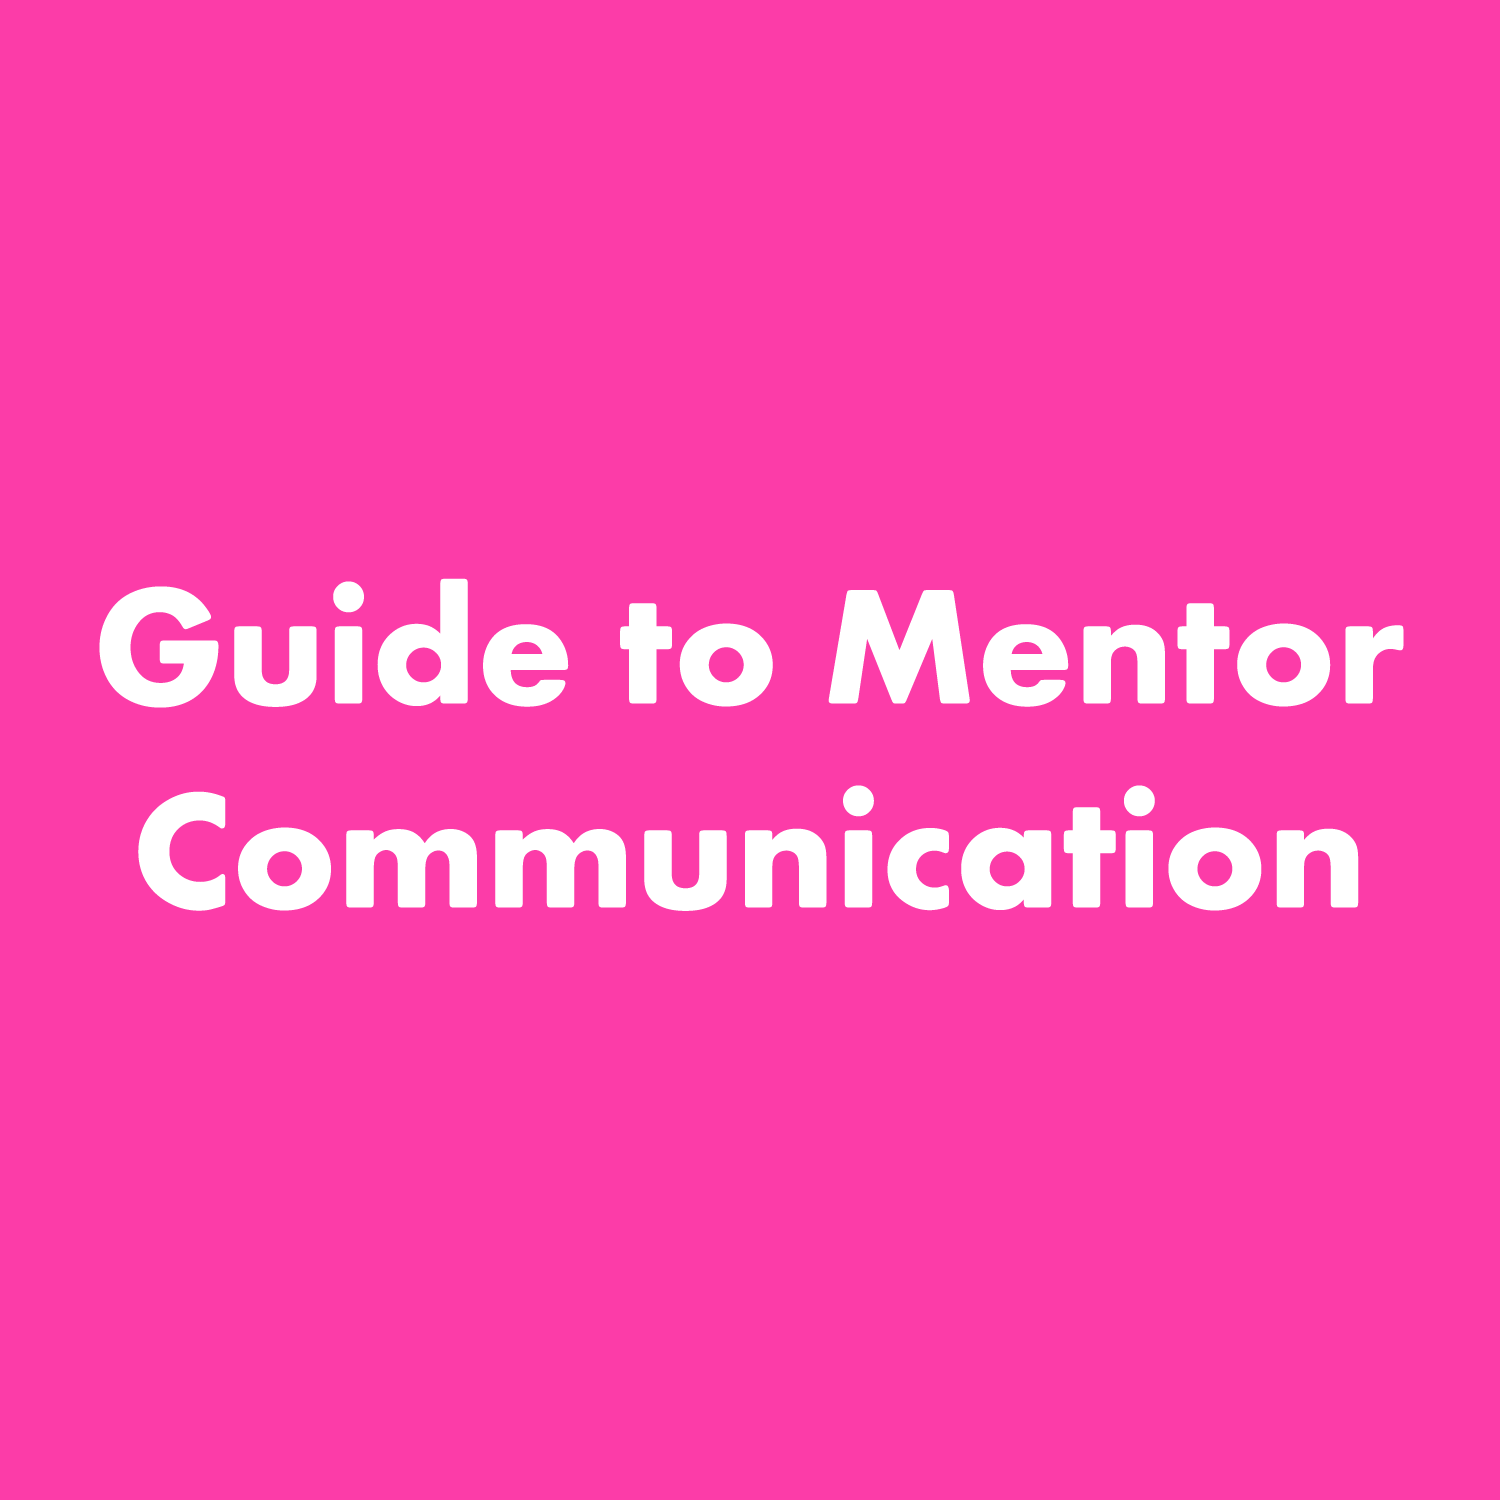 Steps for connecting with mentors and verifying background checks